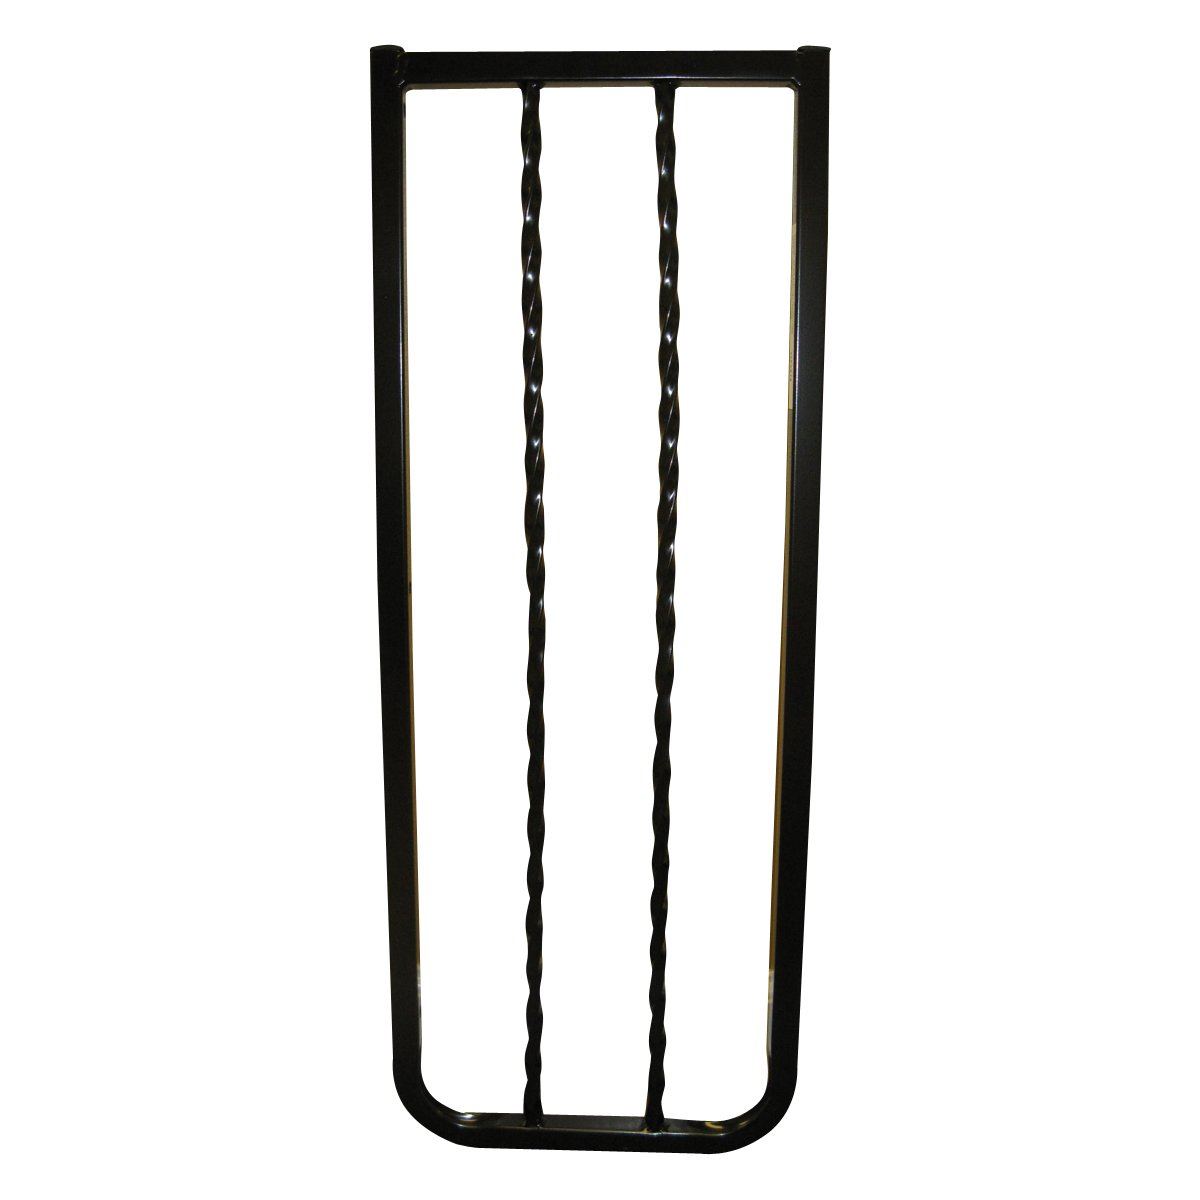 Cardinal Gates Extension for Wrought Iron Decor Gate, Black, 10.5